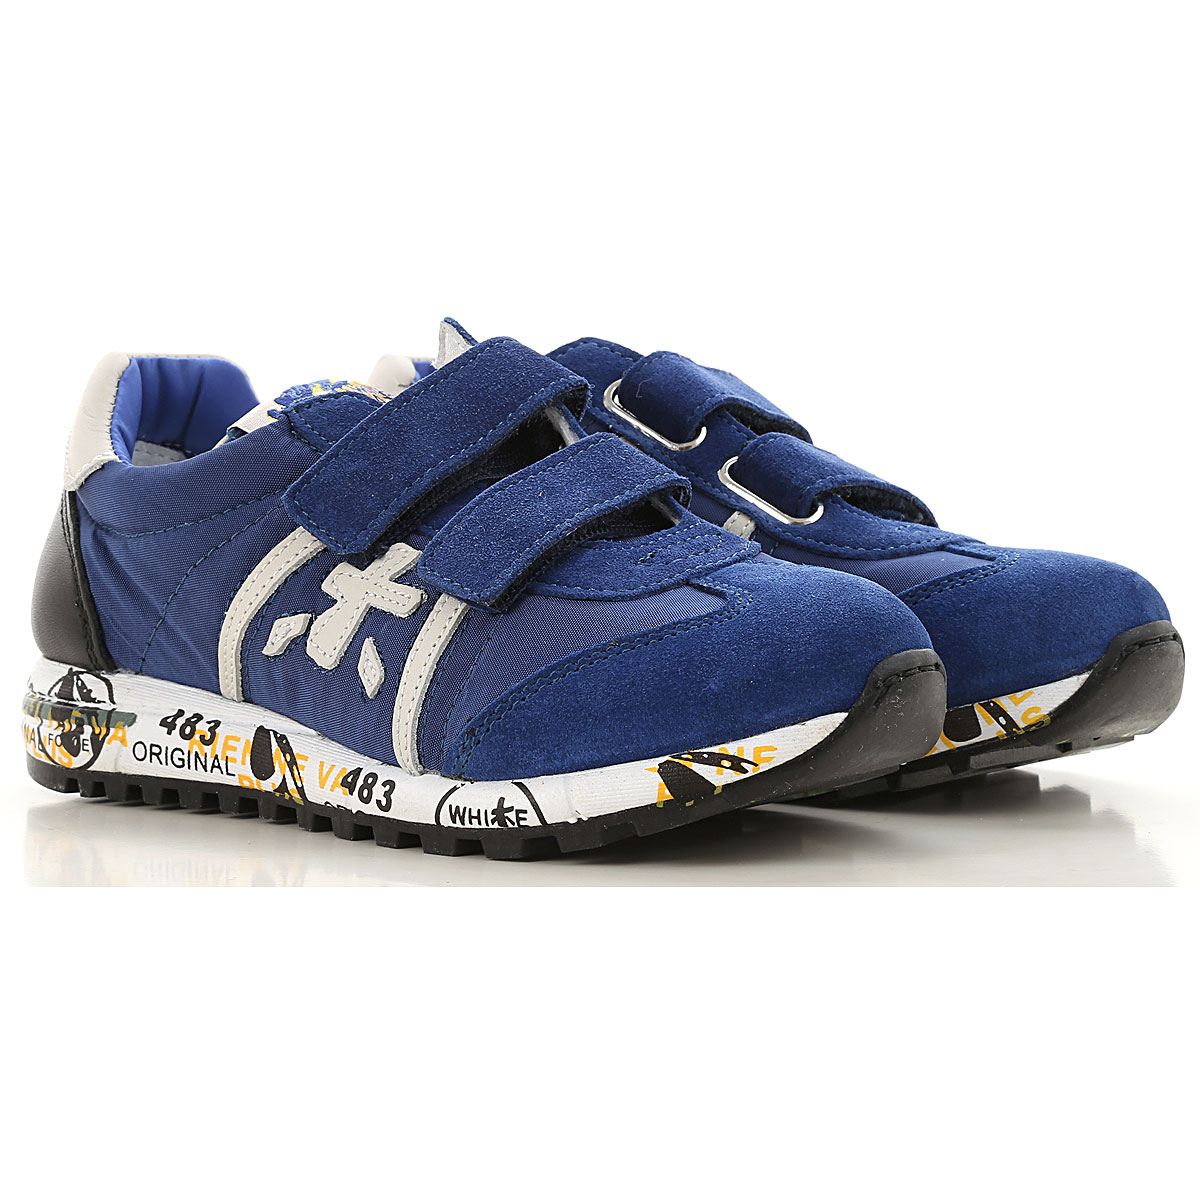 Image of Premiata Kids Shoes for Boys, Blue, Fabric, 2017, 28 29 30 31 32 33 34 35 36 37 38